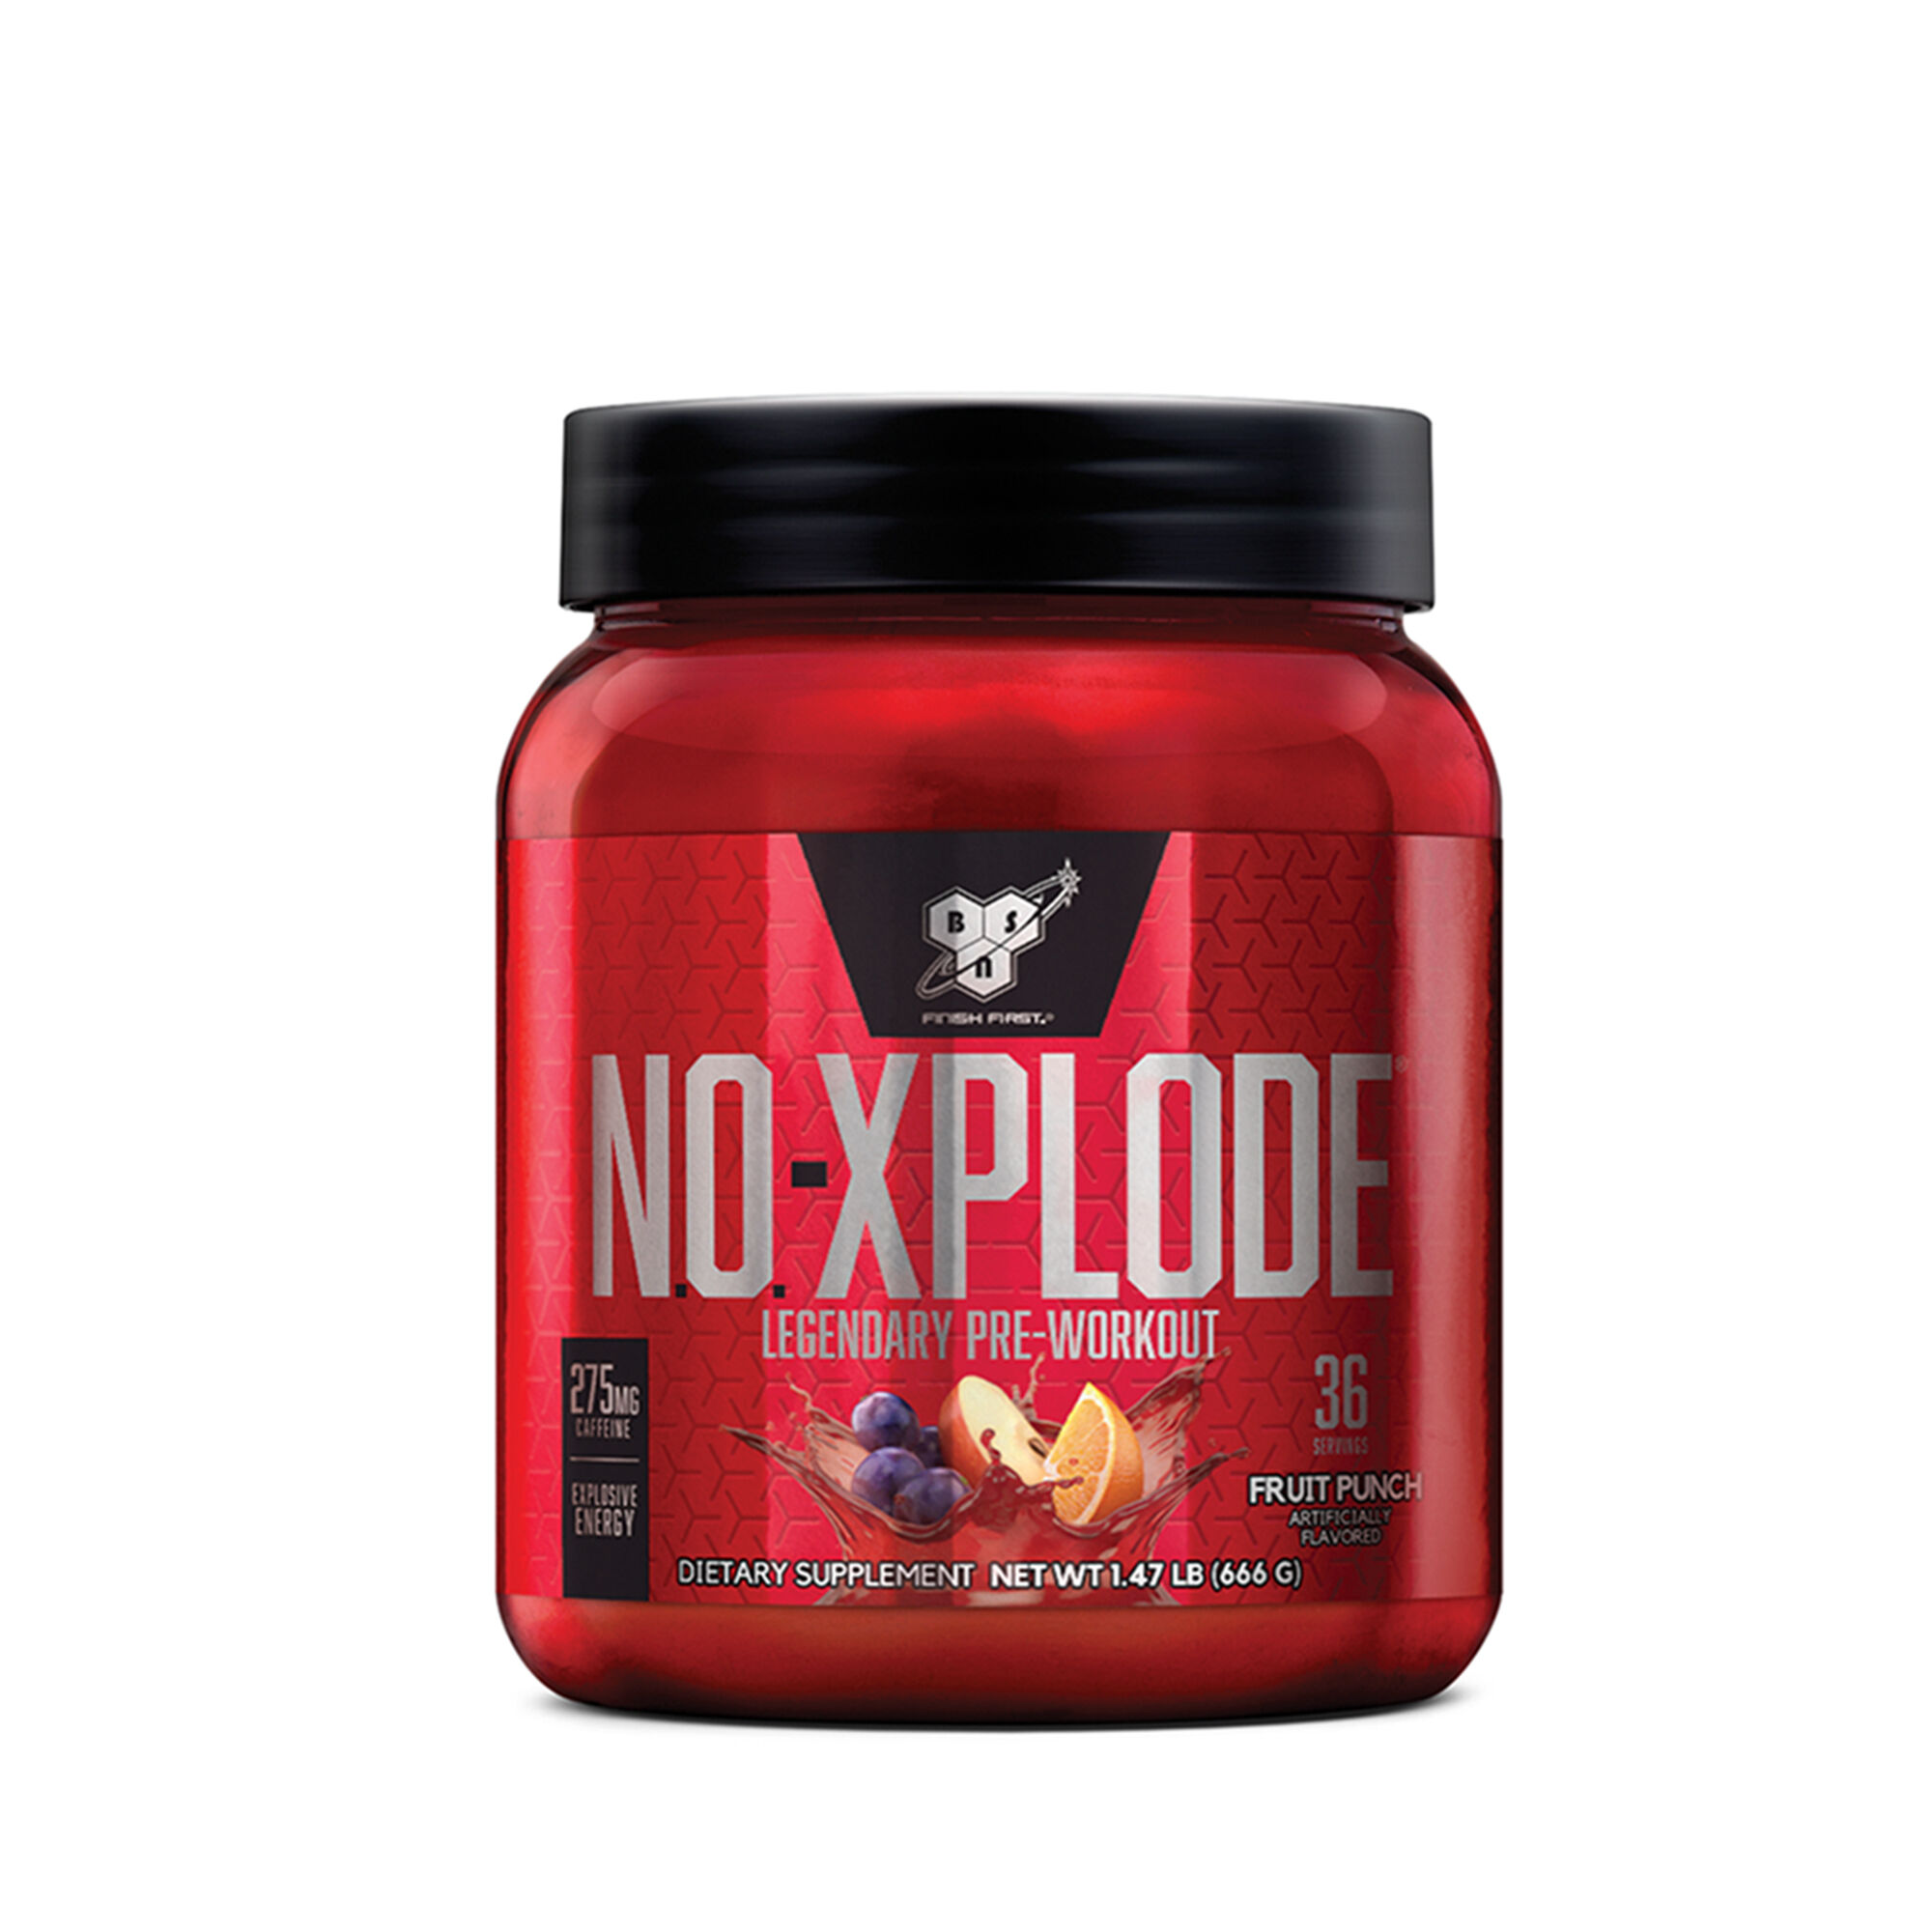 blog pre workout Carbohydrates fuel our workout routine, represent the source of immediate  energy  carbohydrates: a beginner's guide to getting a pre-workout energy  boost.